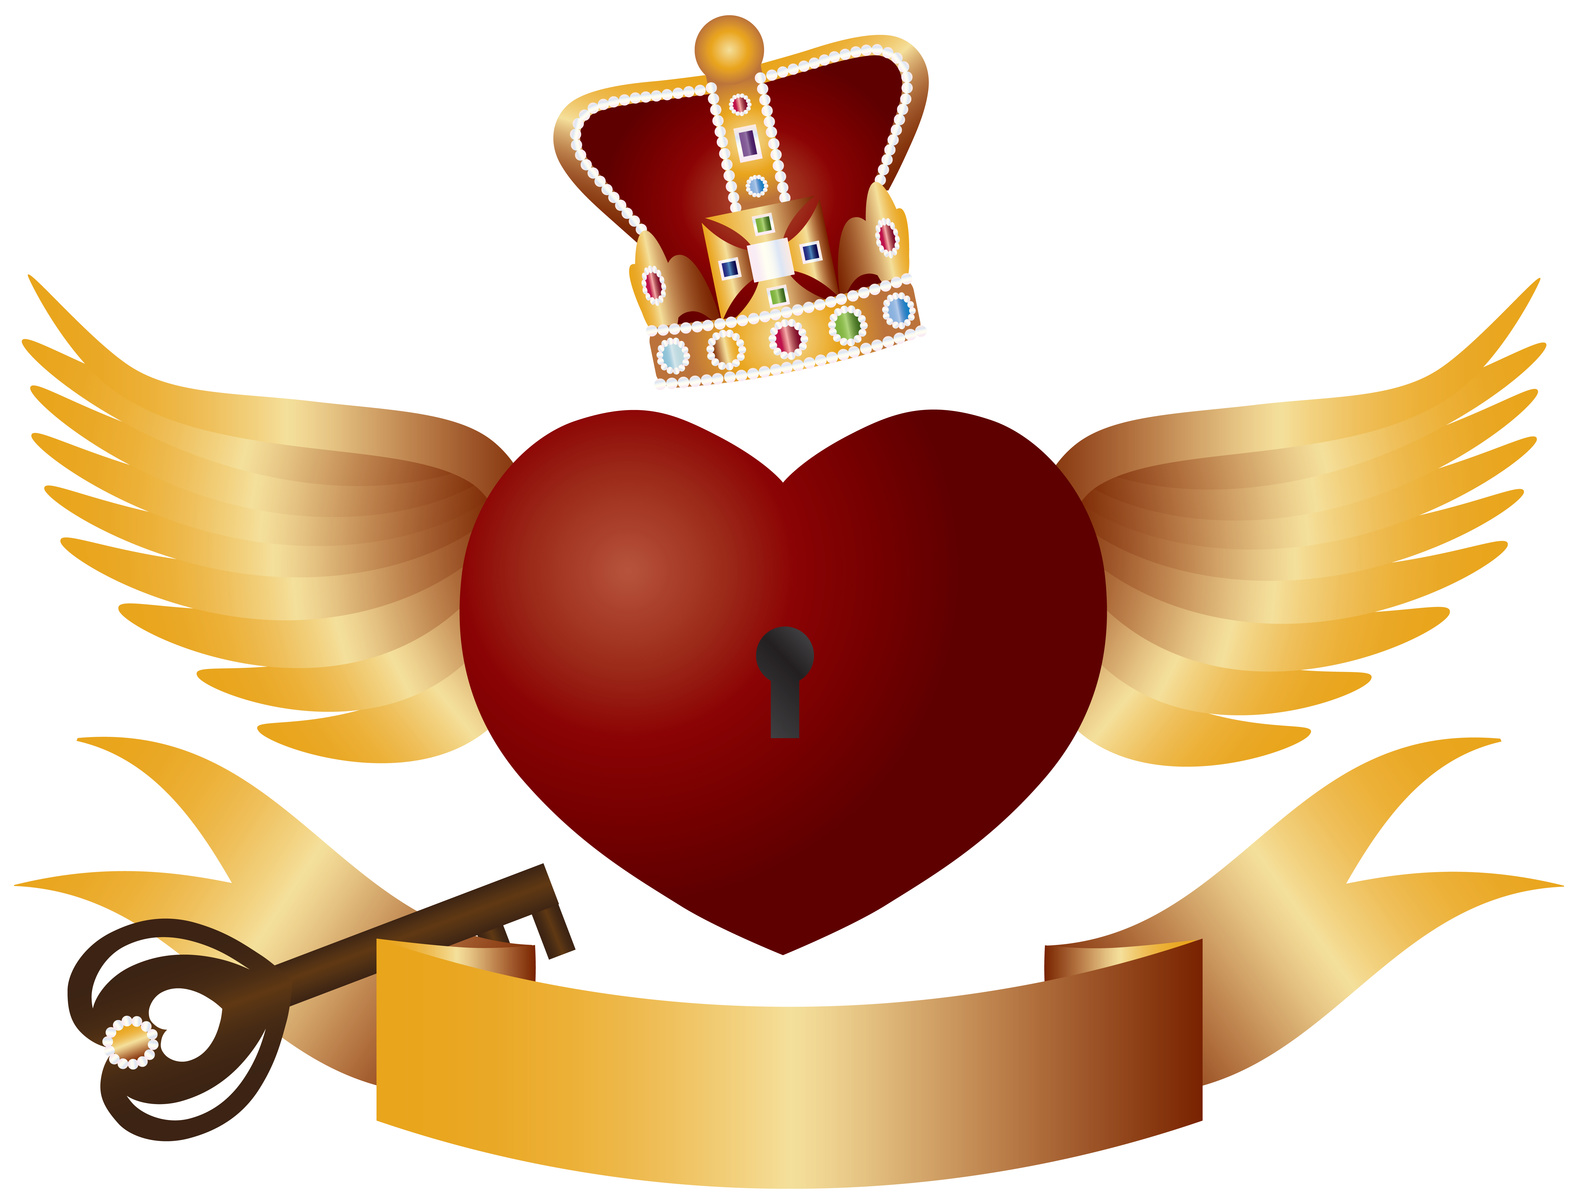 Comedic Drama Play Script: 'Prince Of Hearts' by Ros Adler